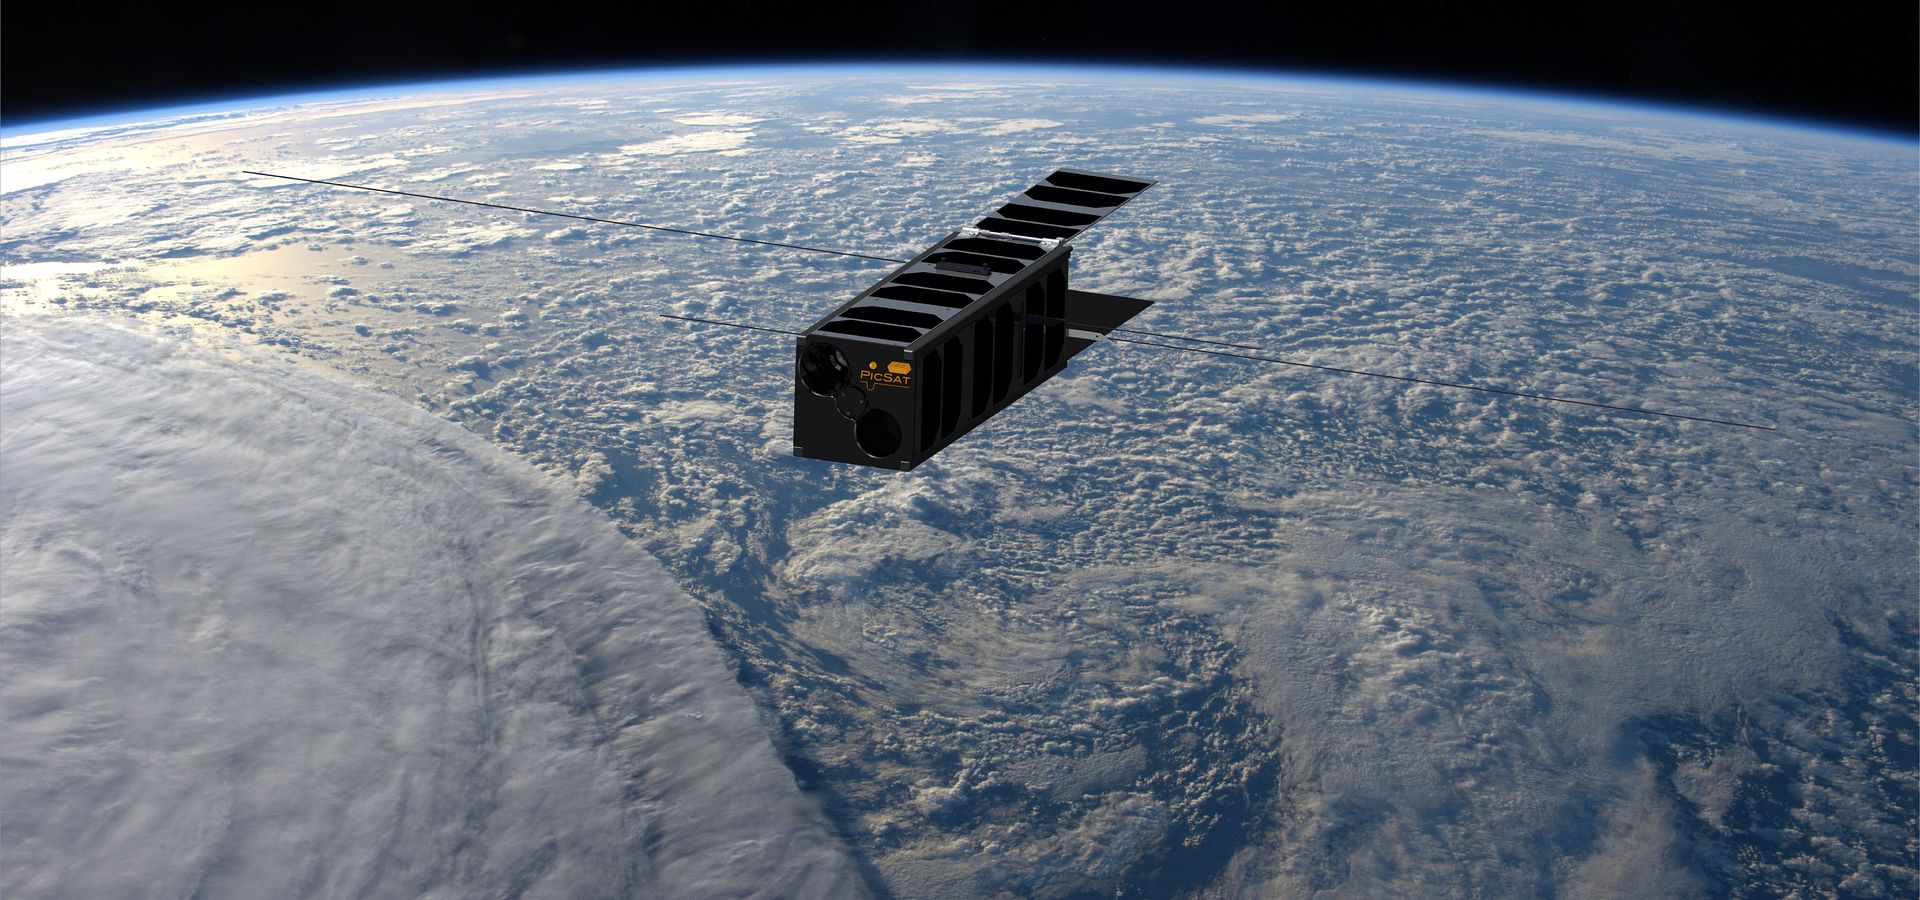 Combining the freedom of a CubeSat with the power of an ESO telescope